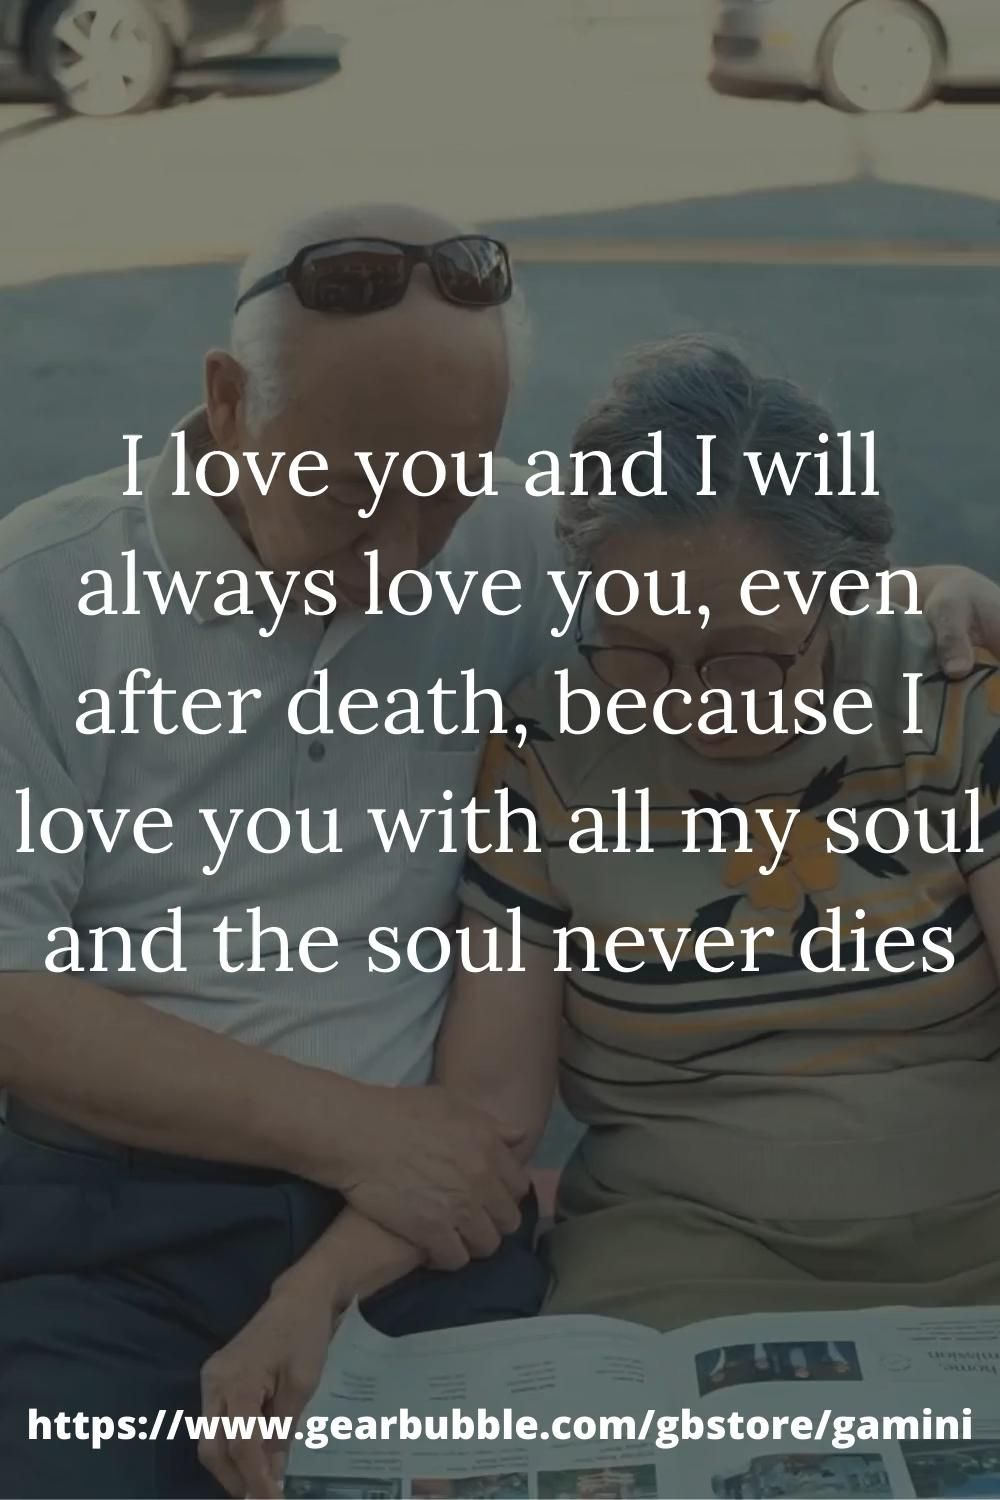 💜 Love Quotes 💜 I love you and I will always love you, even after death, because I love you with all my soul and the soul never dies. #soulmatequotes #soulmatelove #soulmatelovequotes #grandpaquotes #grandparentsquotes #grandpalove #couplequotes #fiancequotes #sharequotes #boyfriendquotes #girlfriendquotes #marriagequotes #lovestatus #lovevideostatus #lovequotes #firstkissquotes #lovequotesvideos #lovepoems #positivequotes #feelingsquotes #relationshipsquotes #love #inspirationalquotes